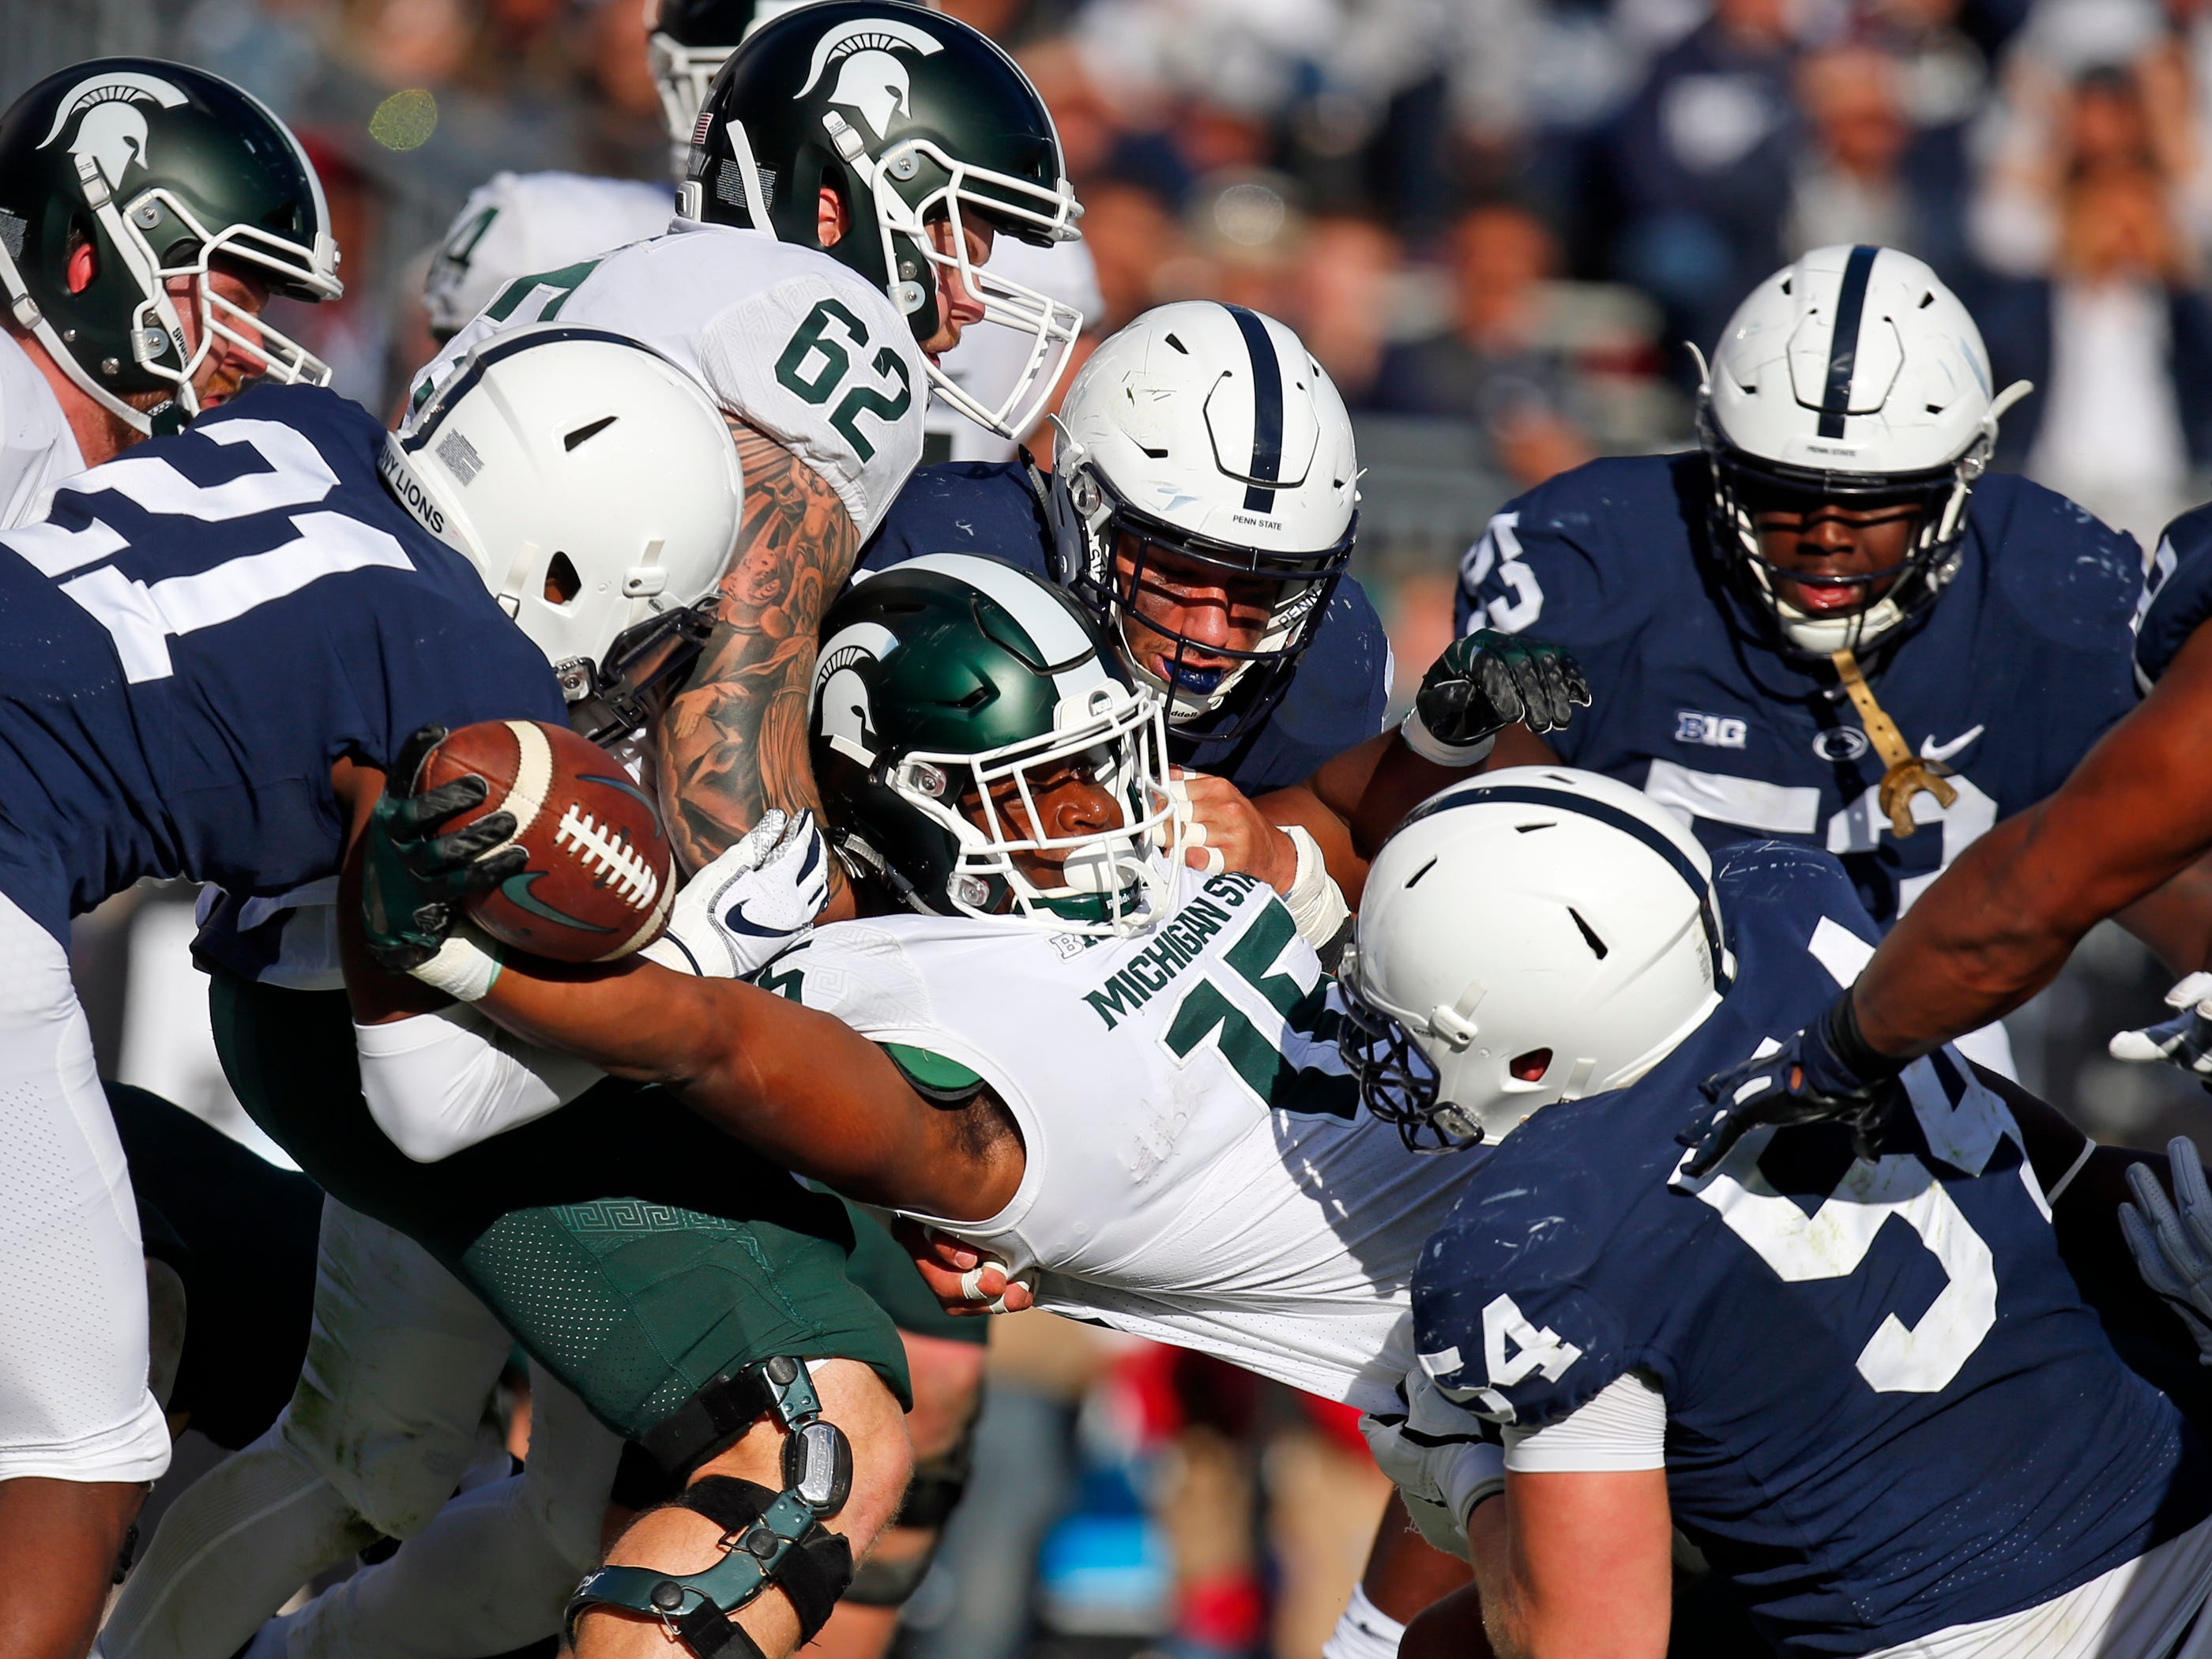 Michigan State's La'Darius Jefferson eaches for a 1-yard touchdown run in the first half against Penn State on Saturday, Oct. 13, 2018, at Beaver Stadium in State College, Pa.